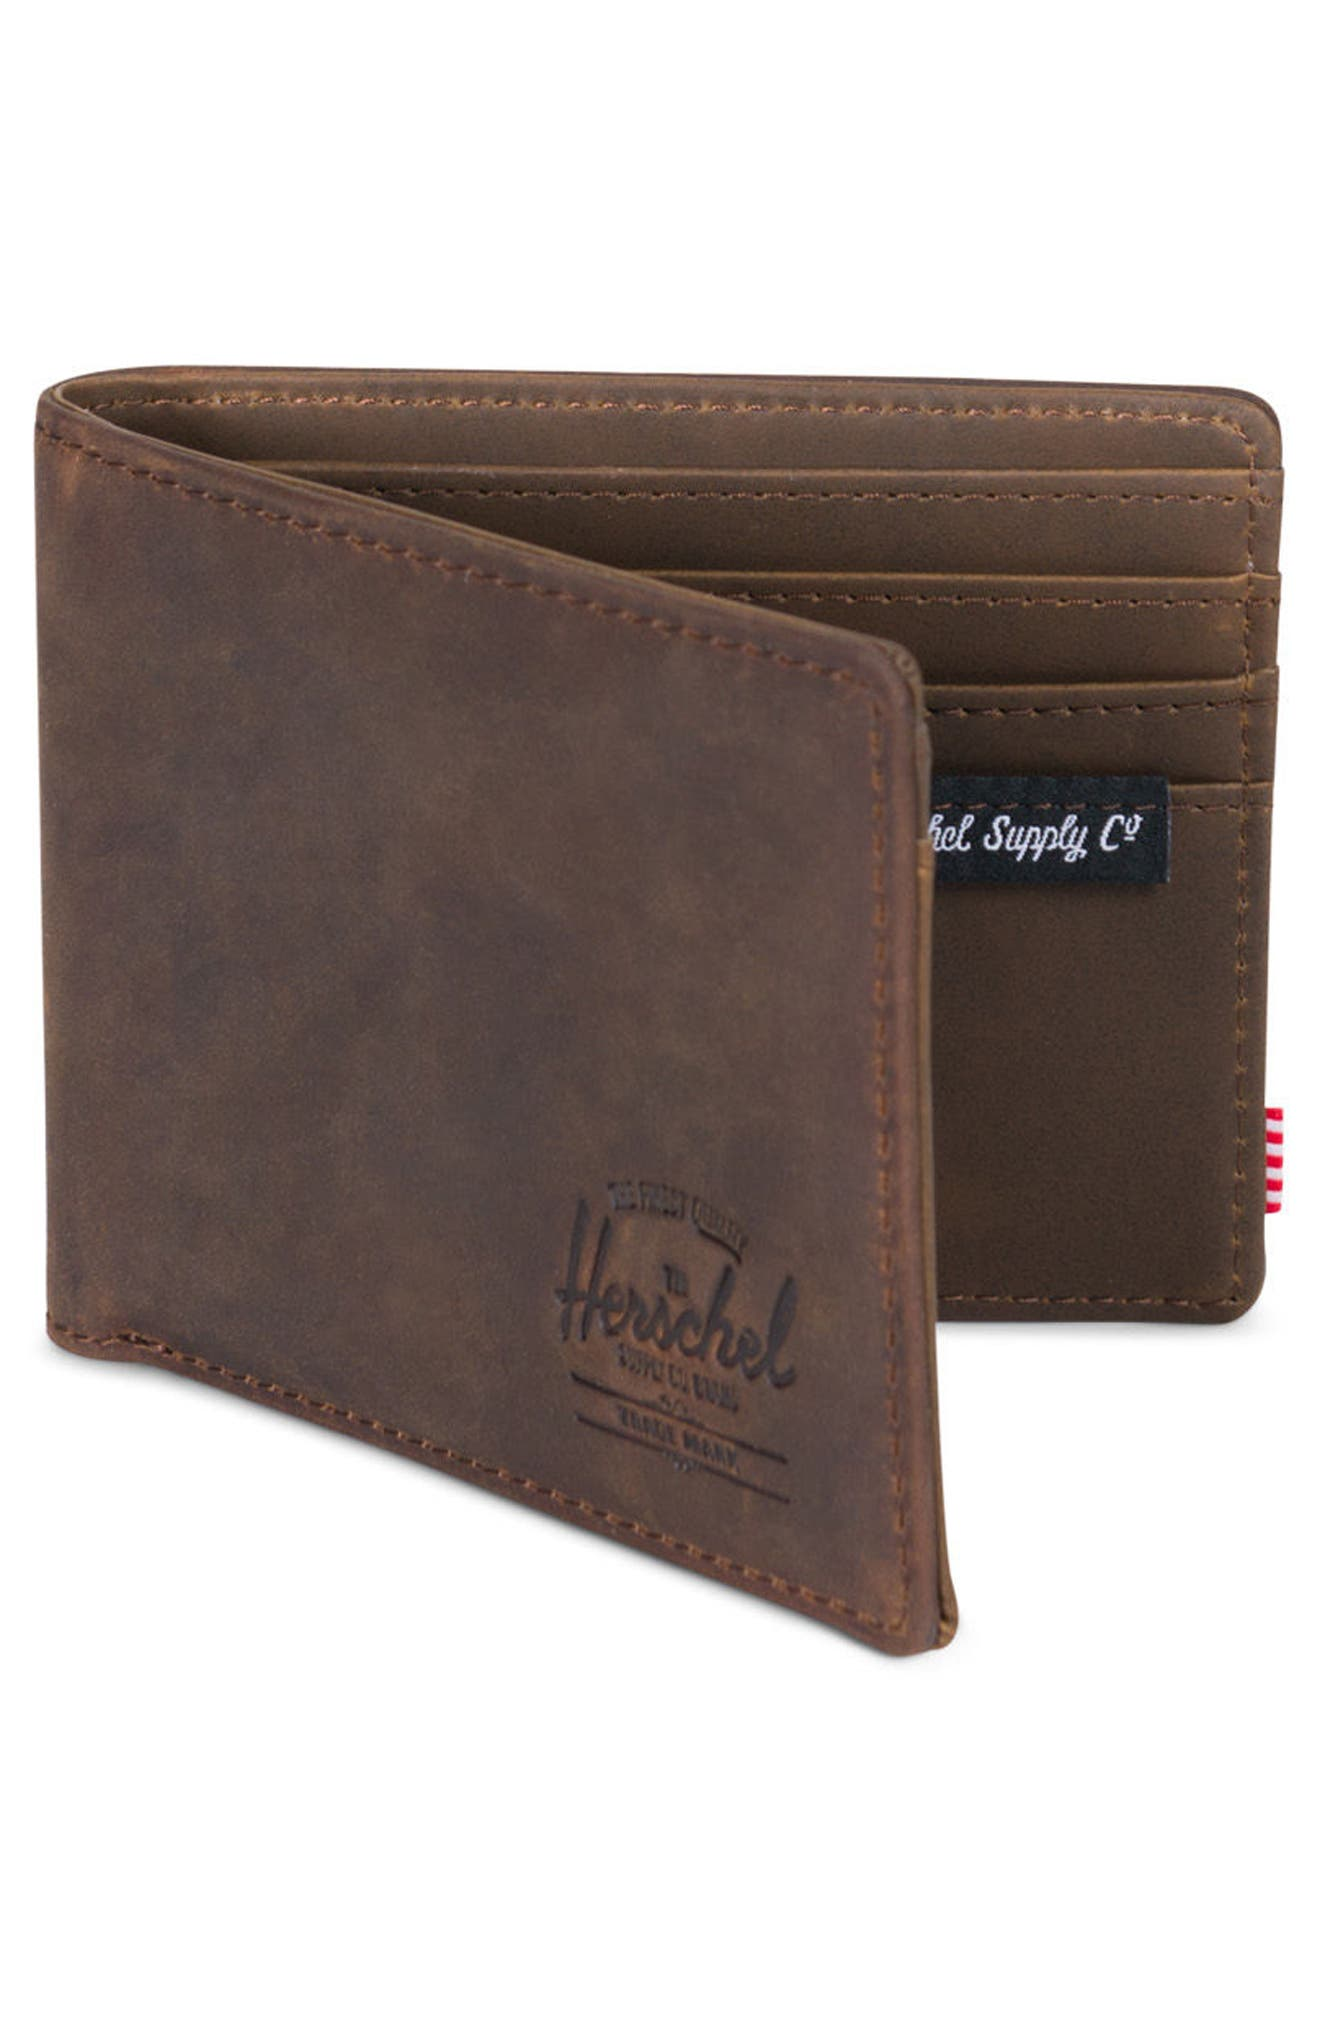 Hank Leather Wallet,                             Alternate thumbnail 3, color,                             Nubuck Leather